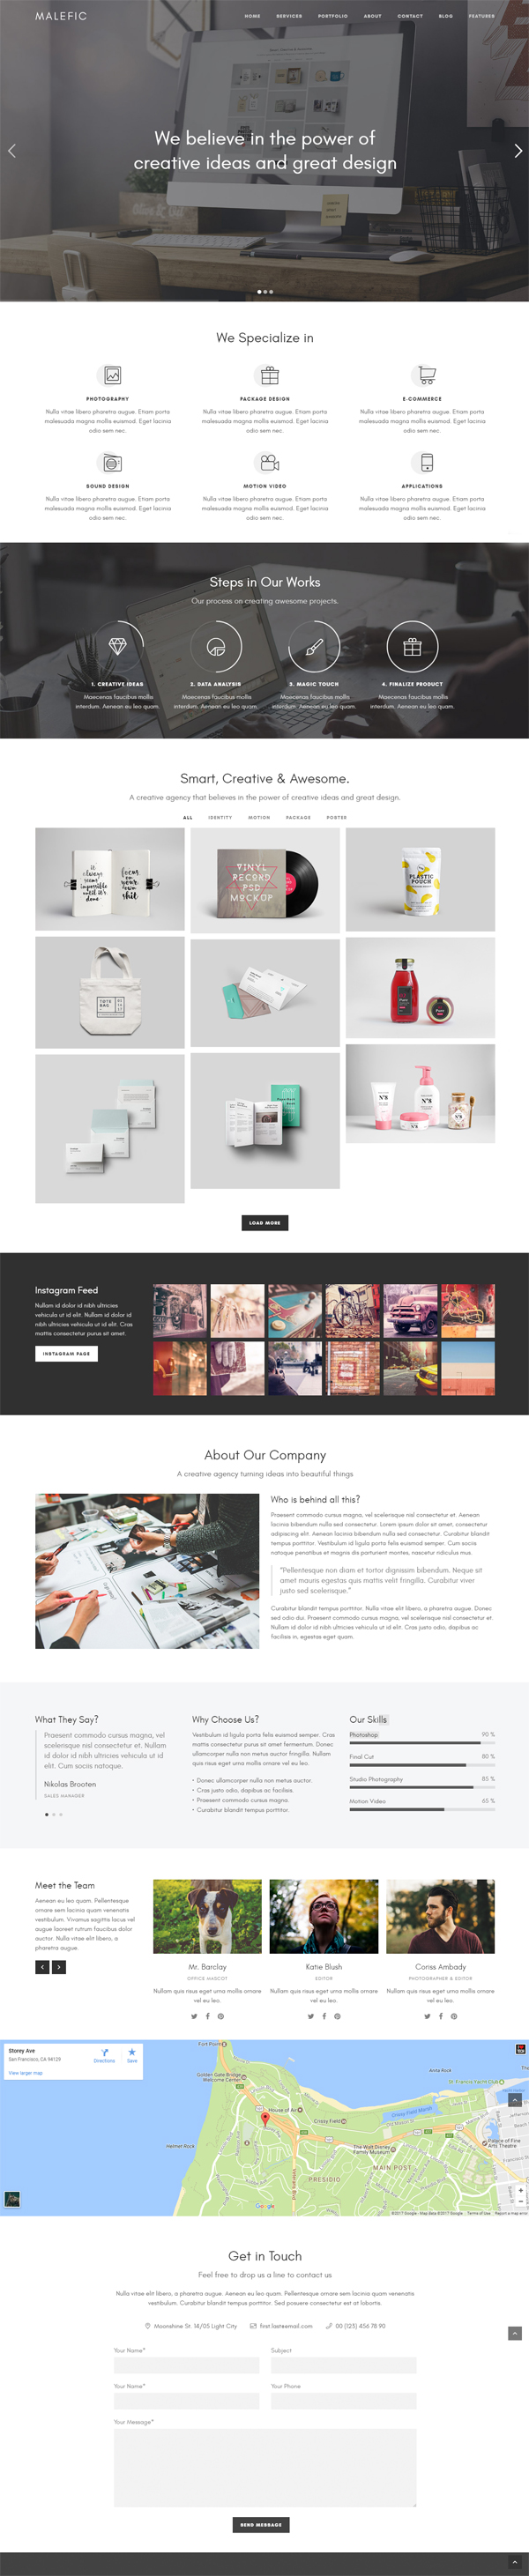 Malefic - Multipurpose One Page Responsive WordPress Theme